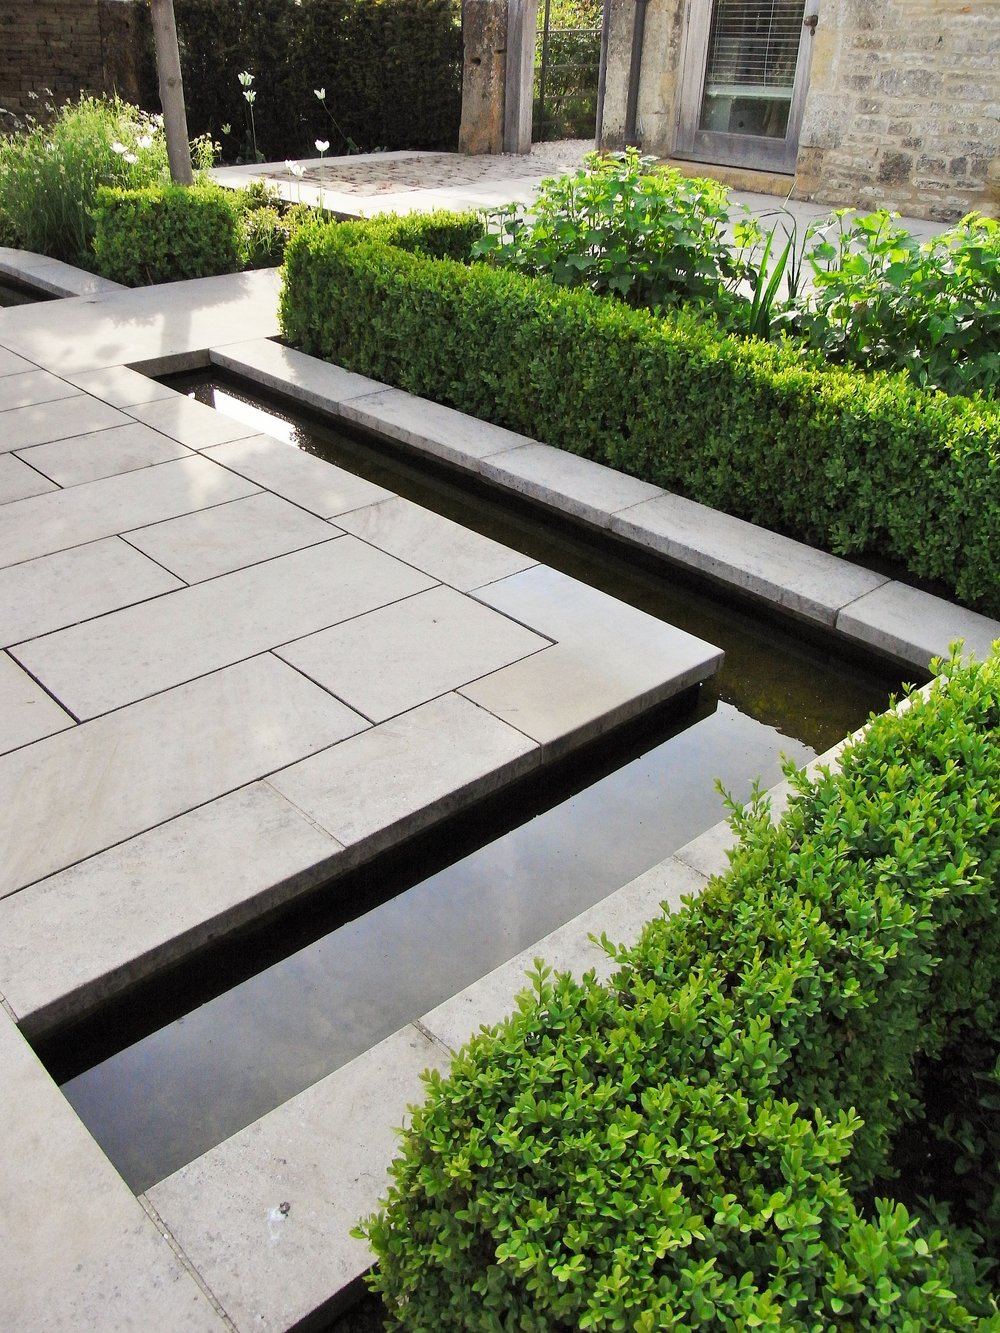 Beautifully-laid limestone patio designed by Jinny Blom. Image: Lorraine Young/ Verve Garden Design.